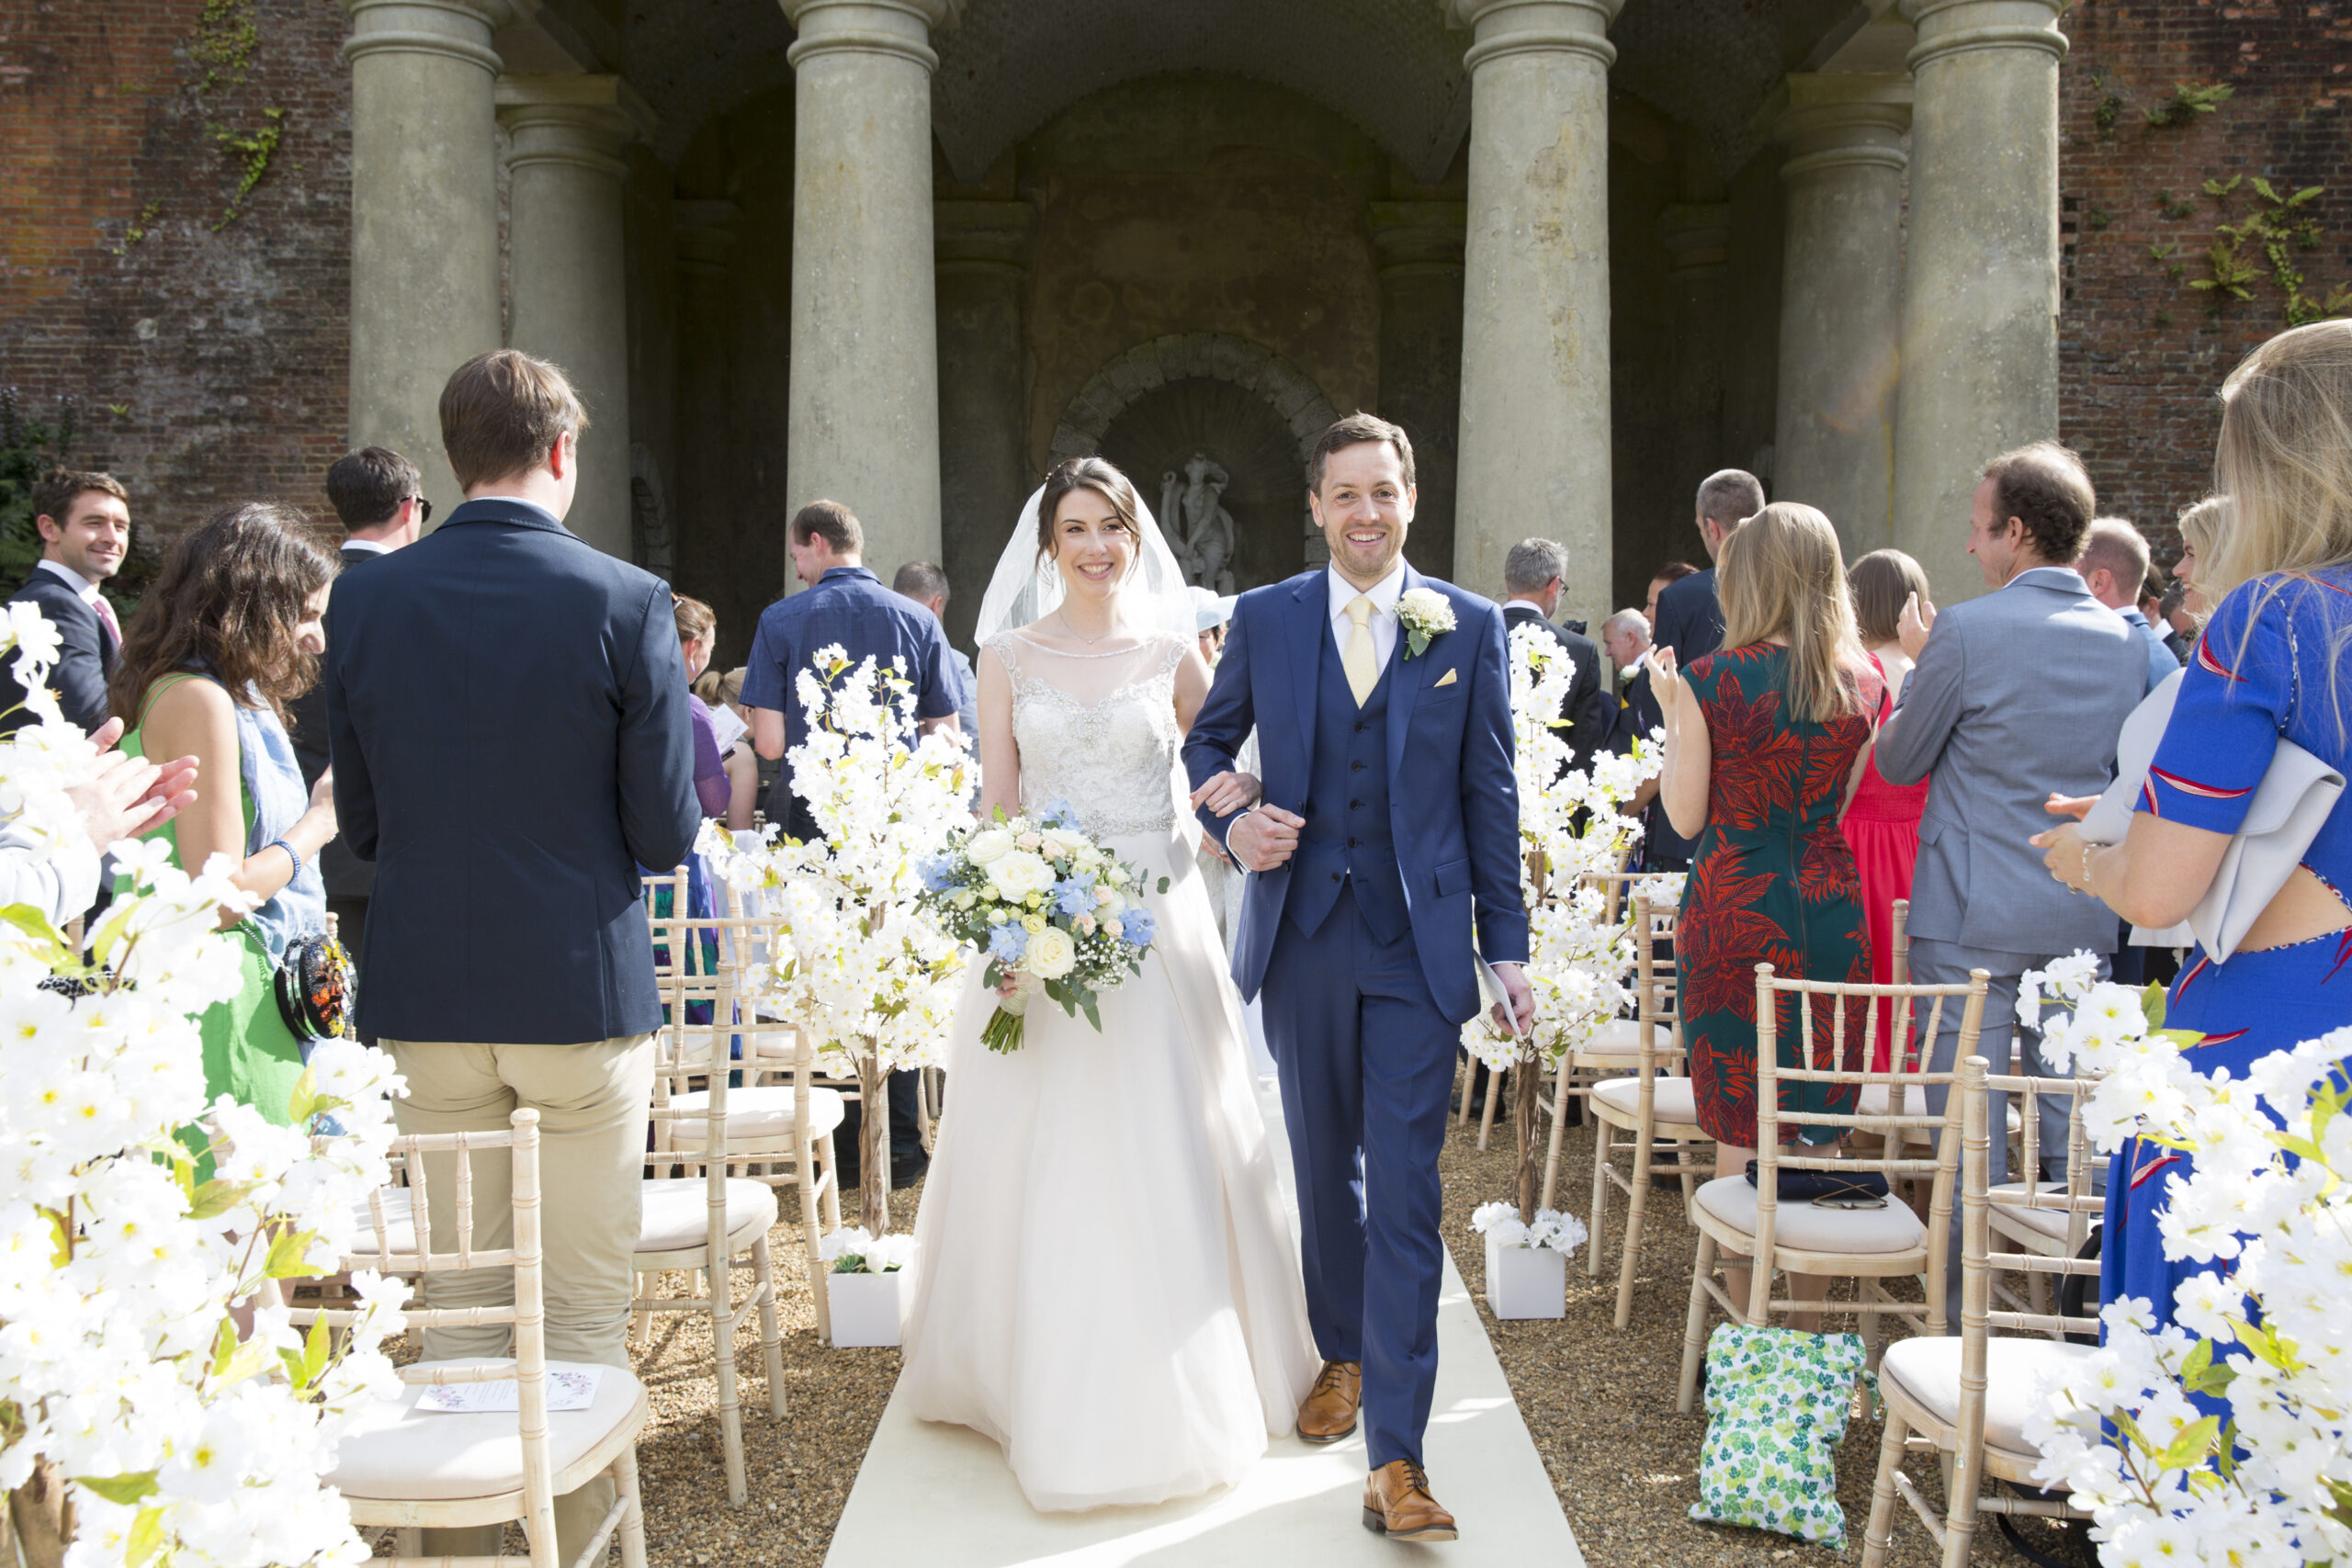 bride and groom walking up the aisle after their outdoor ceremony at Wotton House in Dorking, Surrey